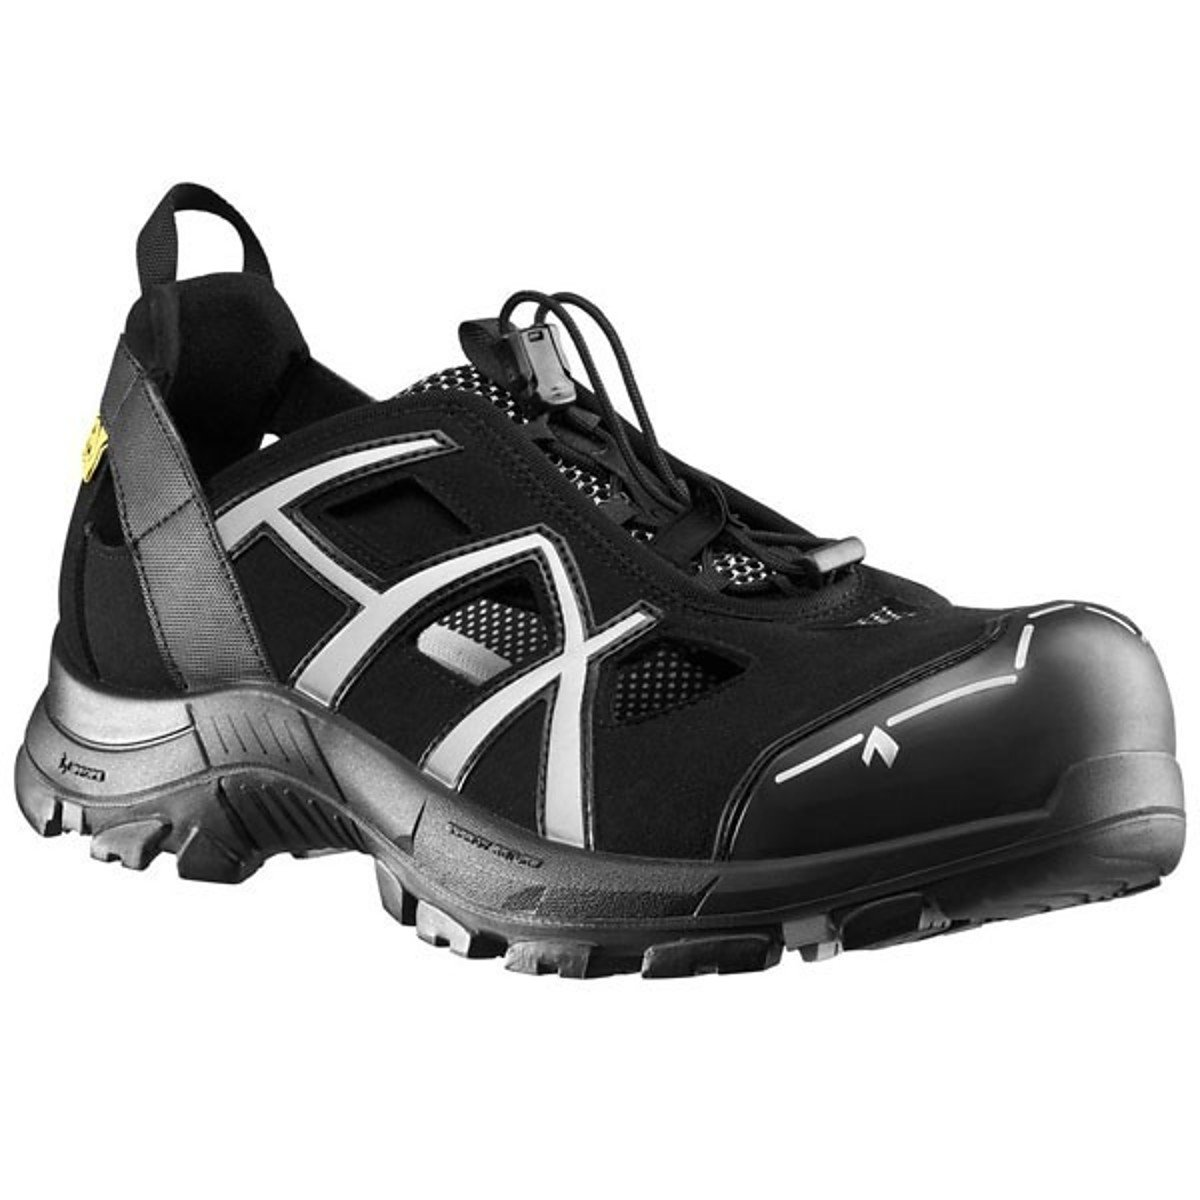 Haix Calzado de Seguridad Safety 62 Low: Amazon.es: Zapatos y complementos